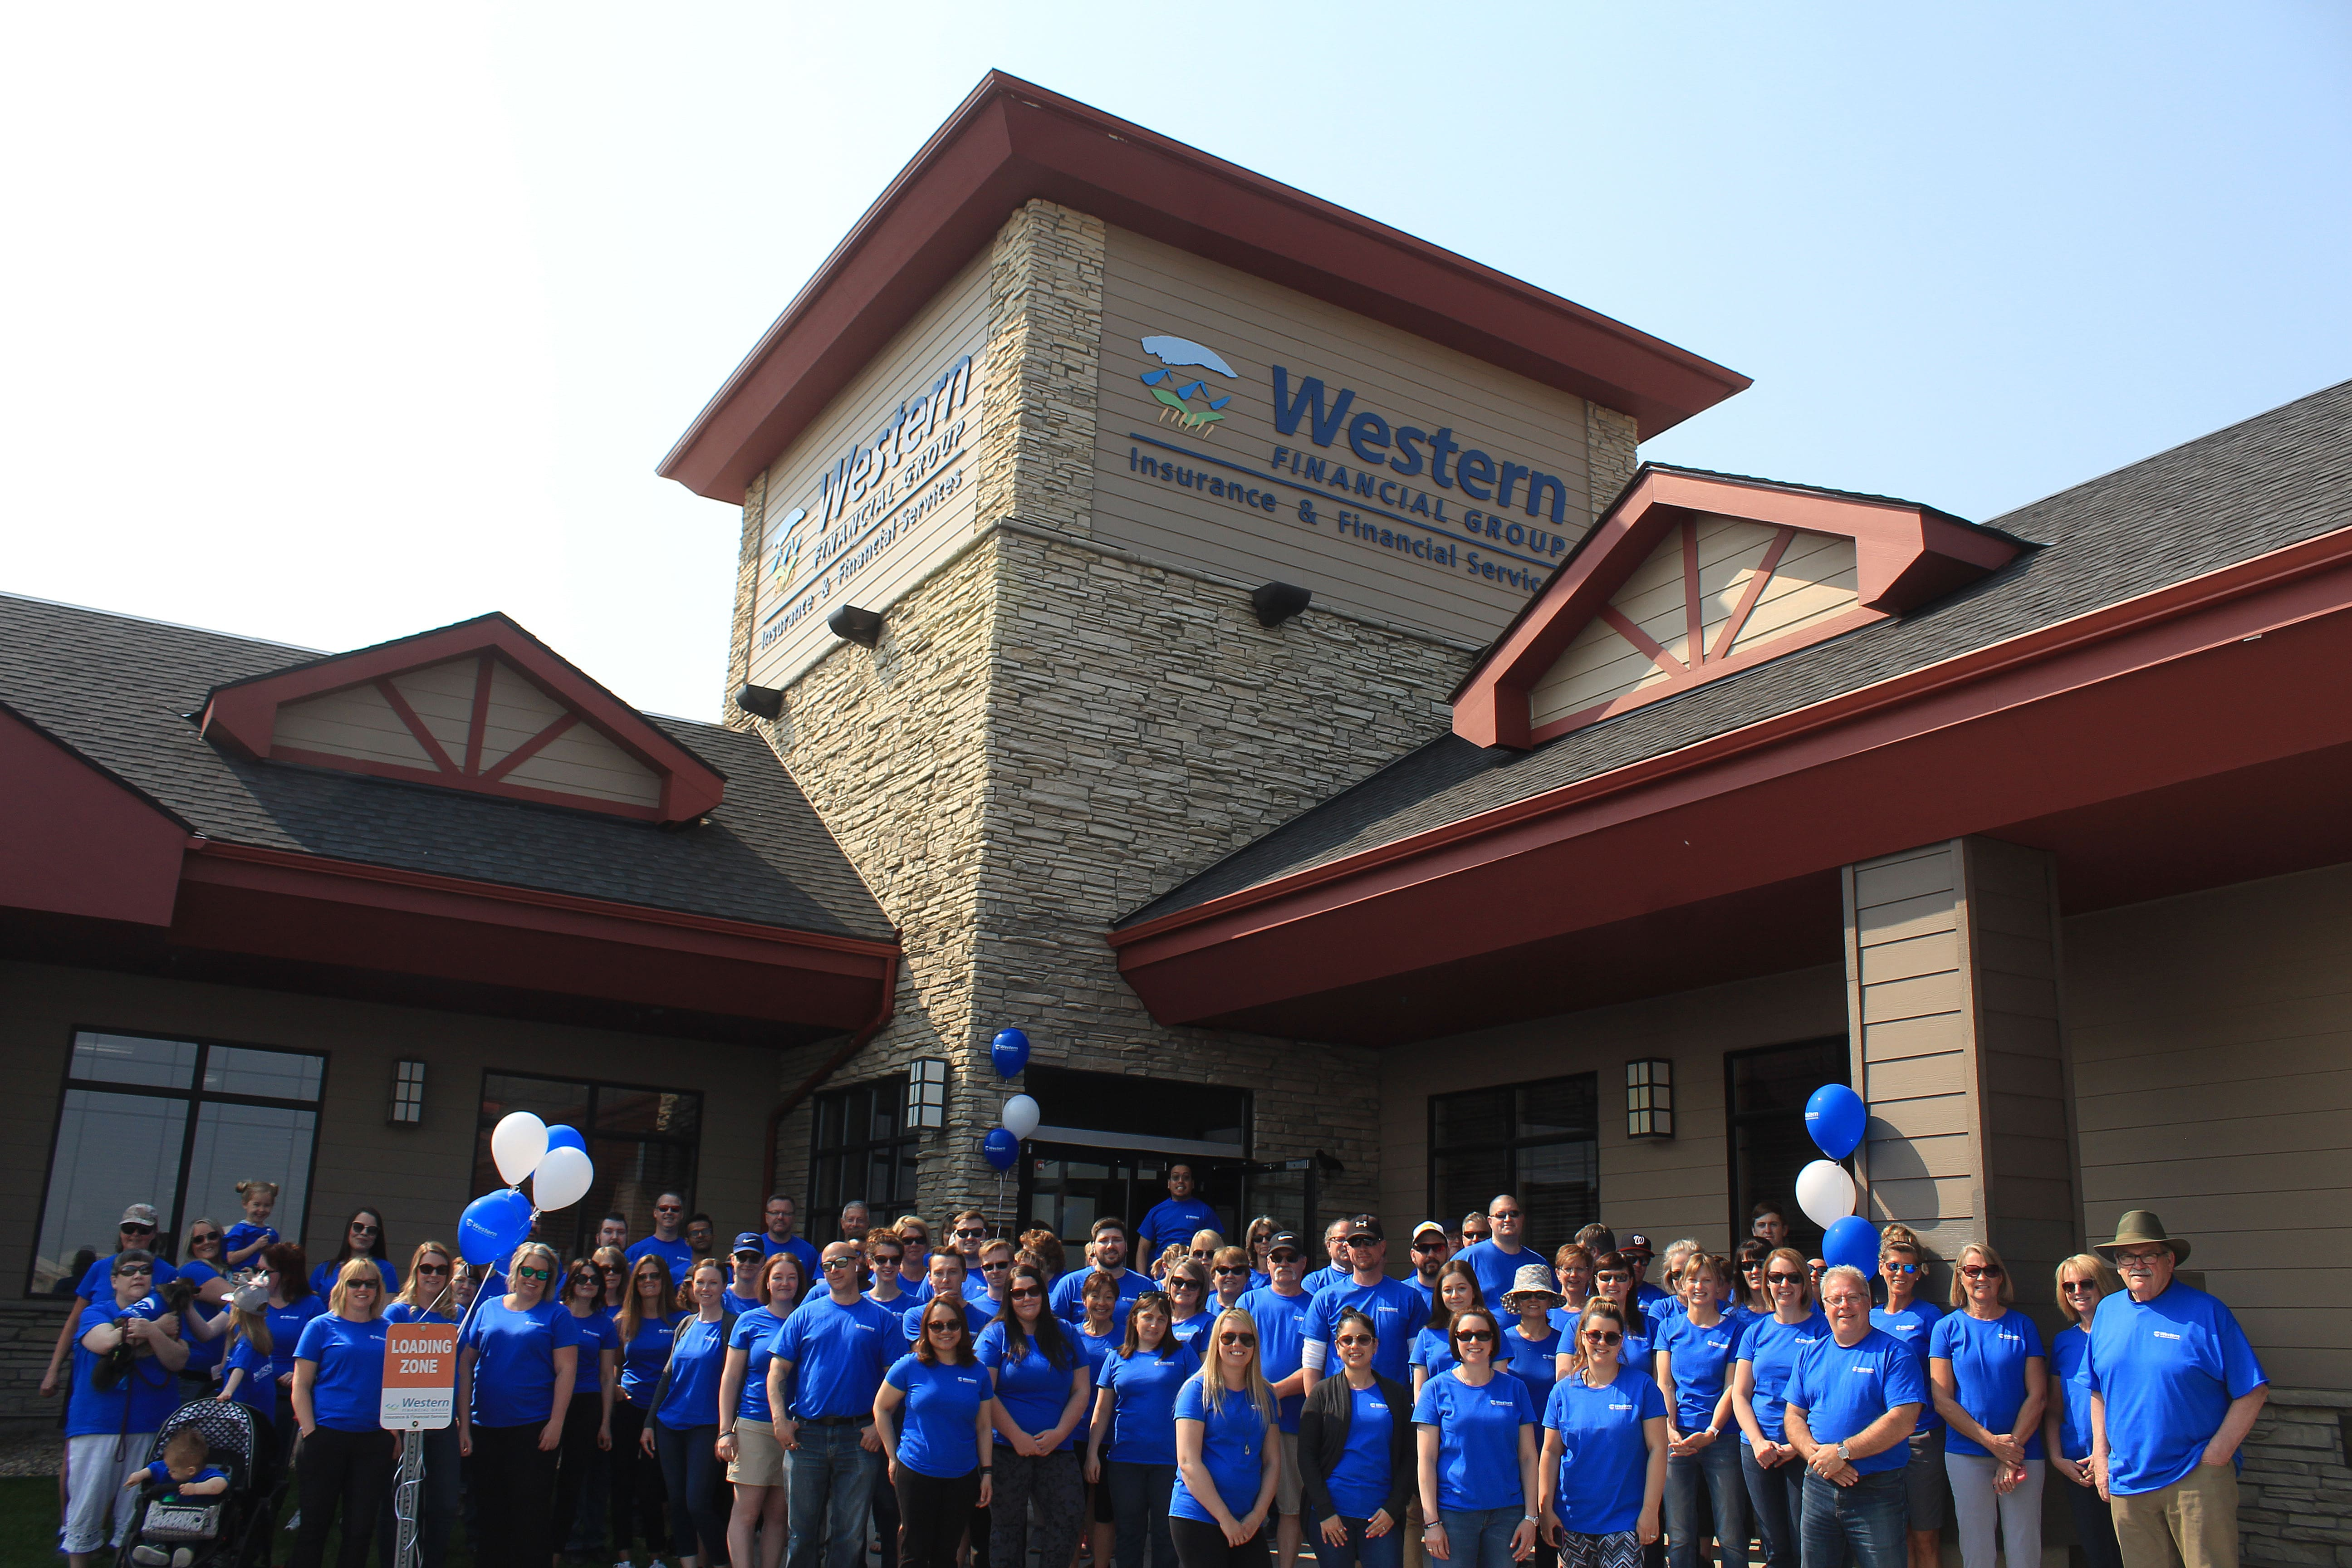 The Western Financial Group headquarters team prior to the National Walk to Support the Cause